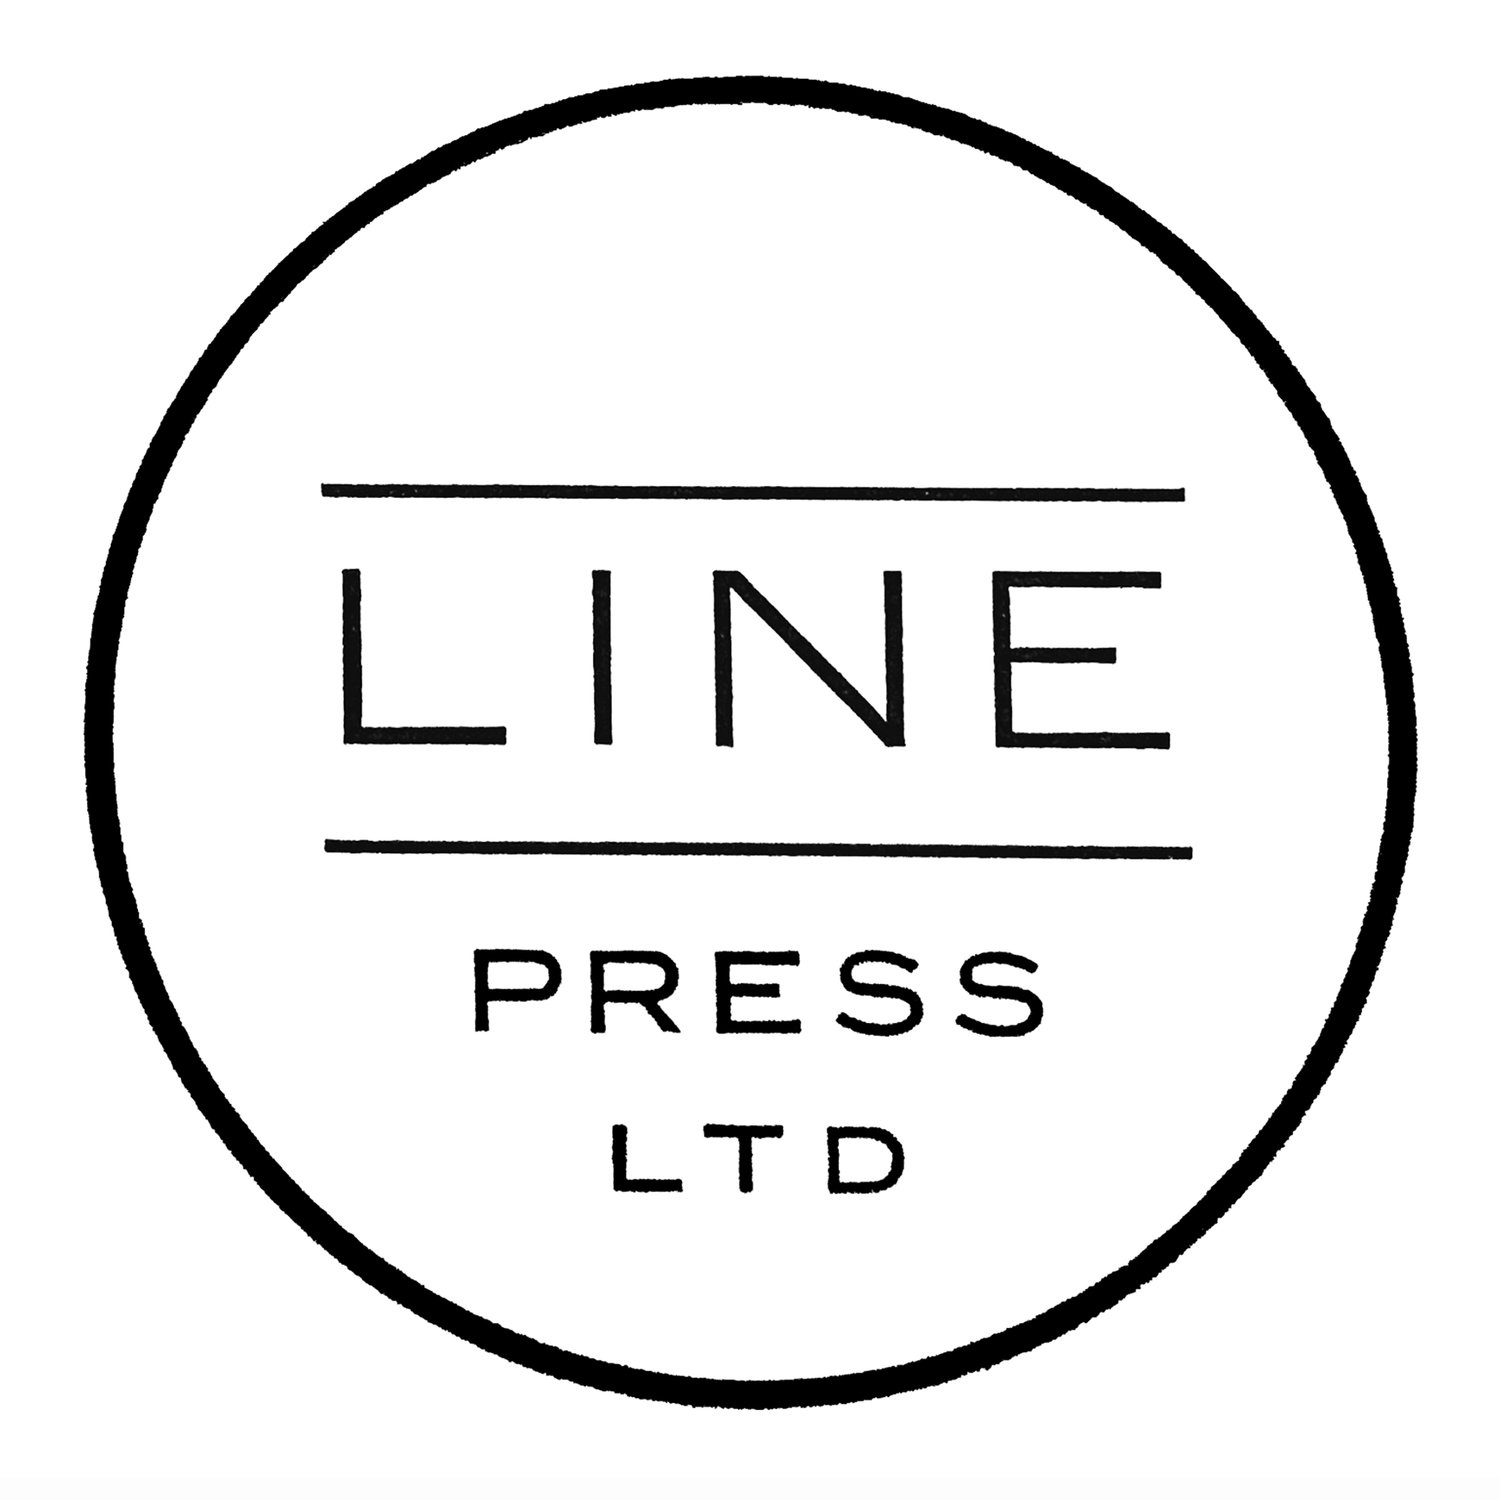 LINE PRESS LIMITED